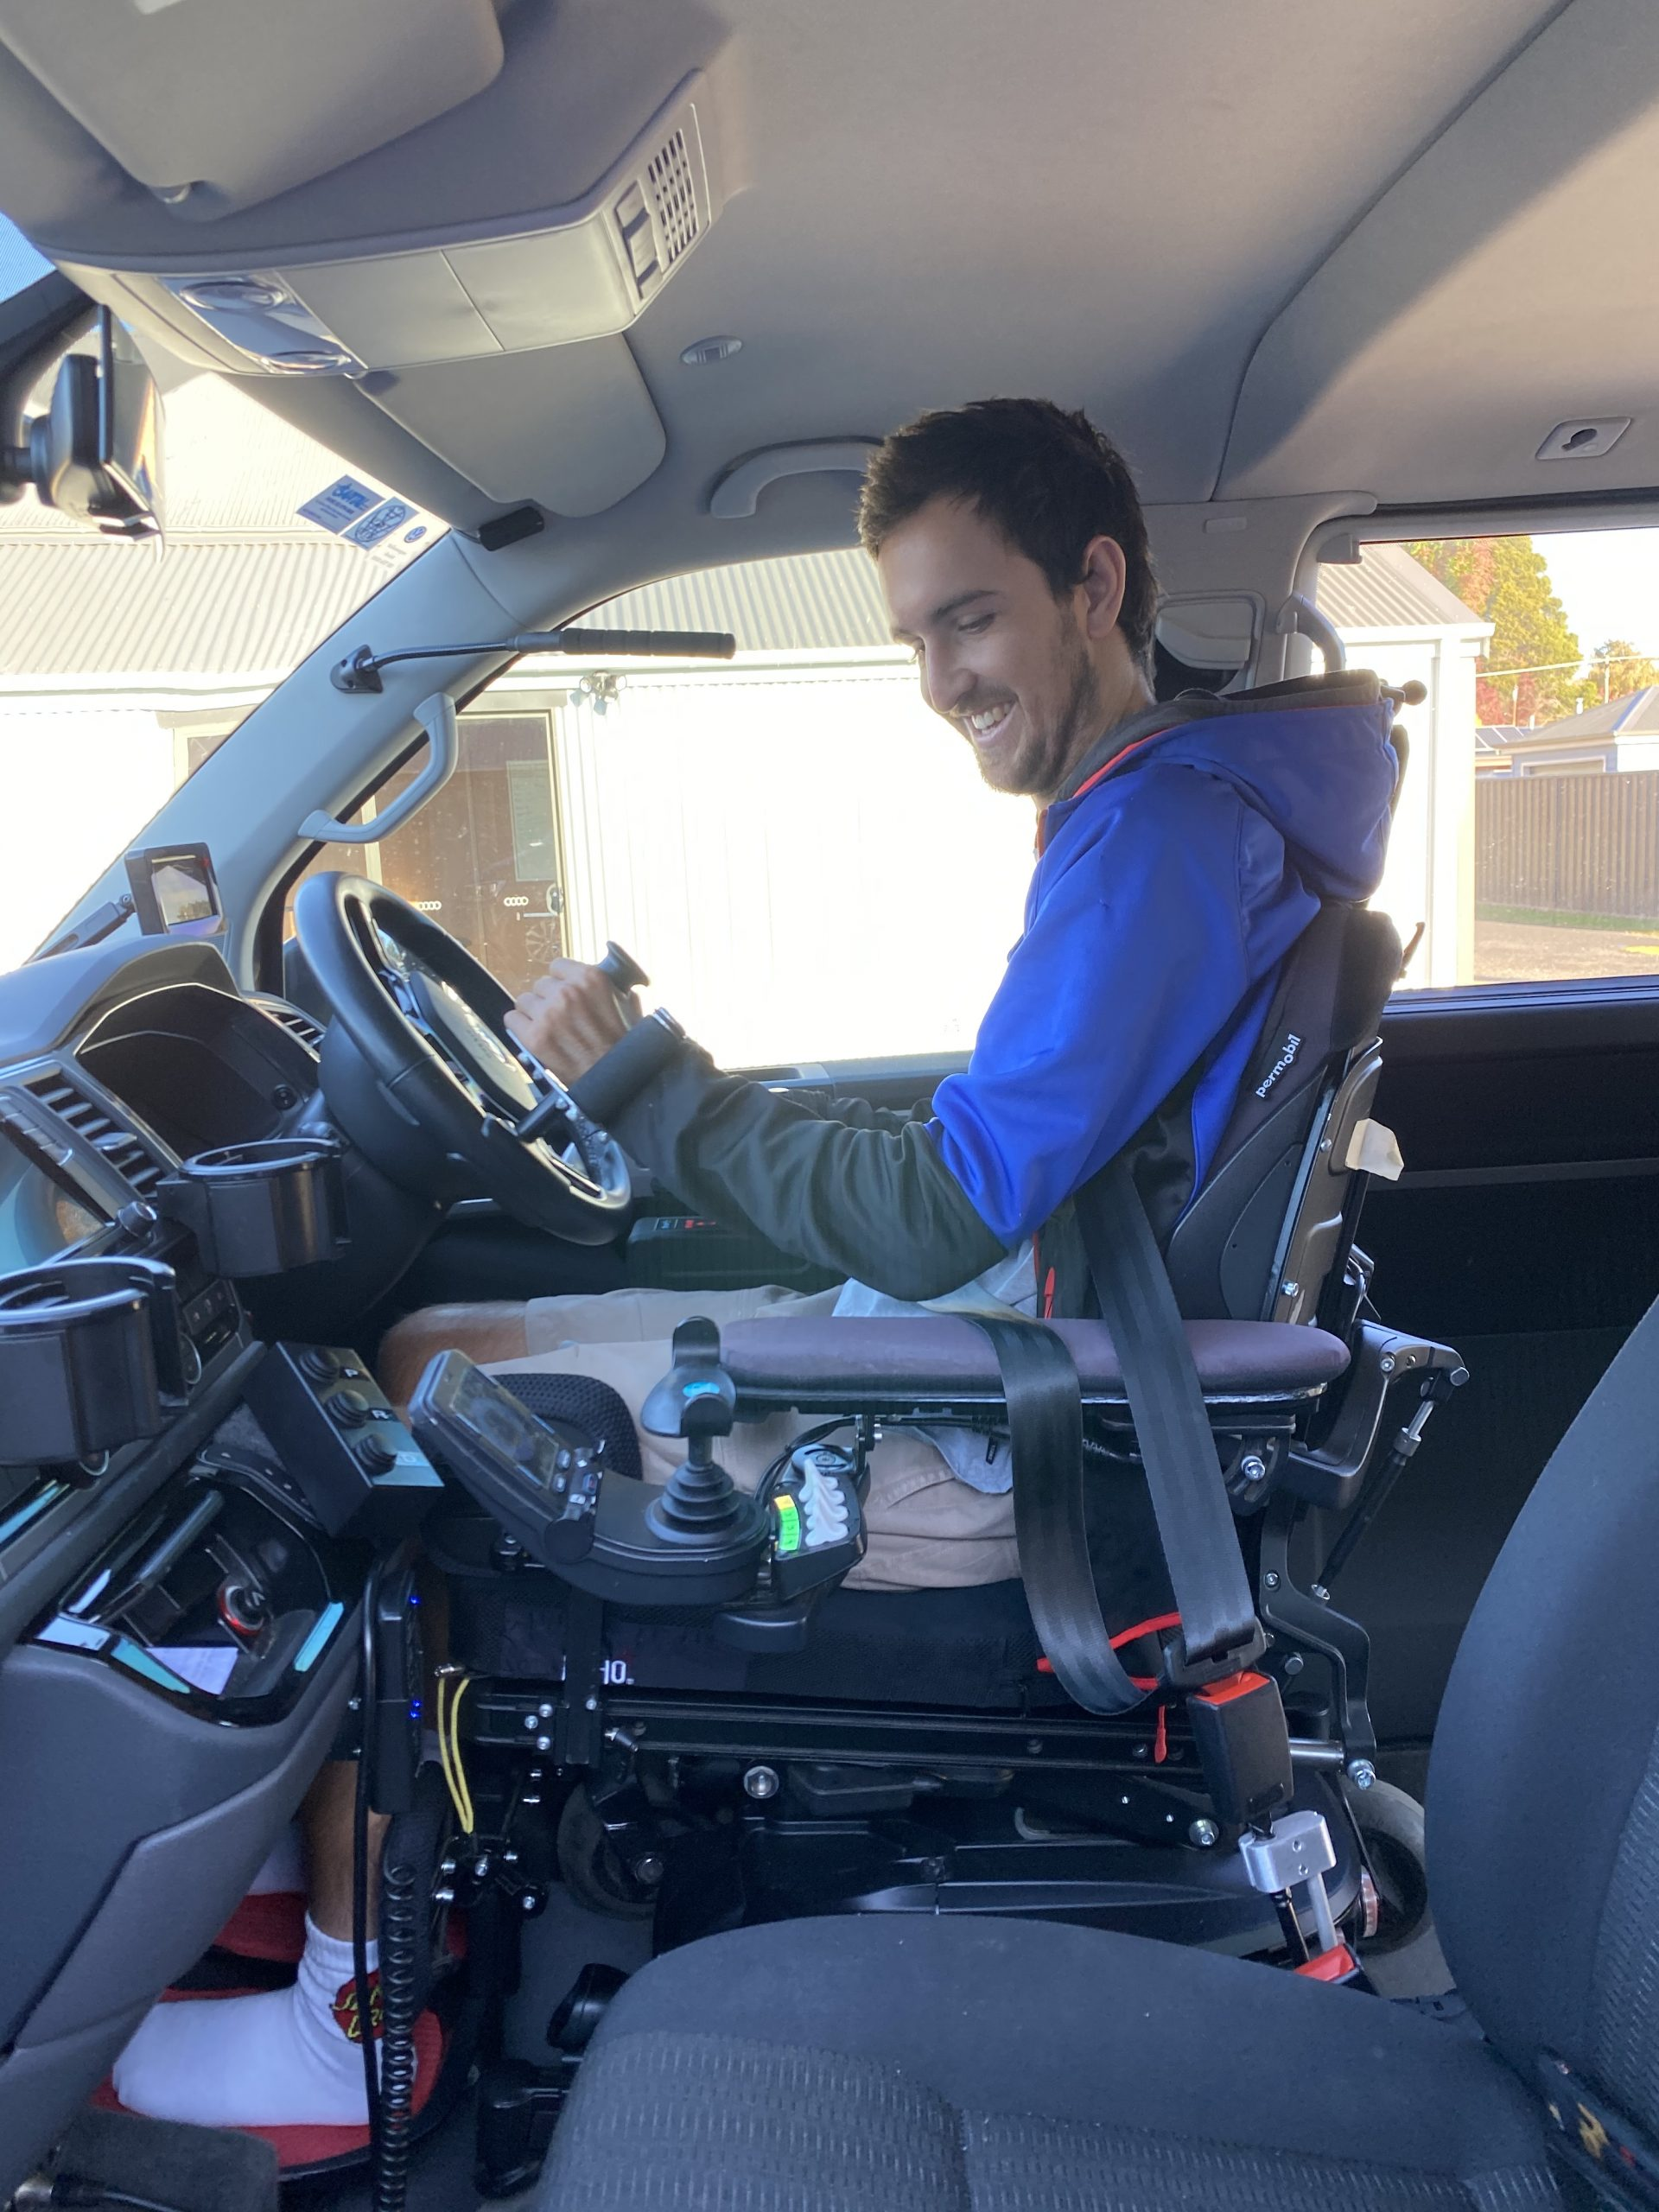 Person with disability smiling in power chair driving from chair with high level driving modifications from Total Ability.